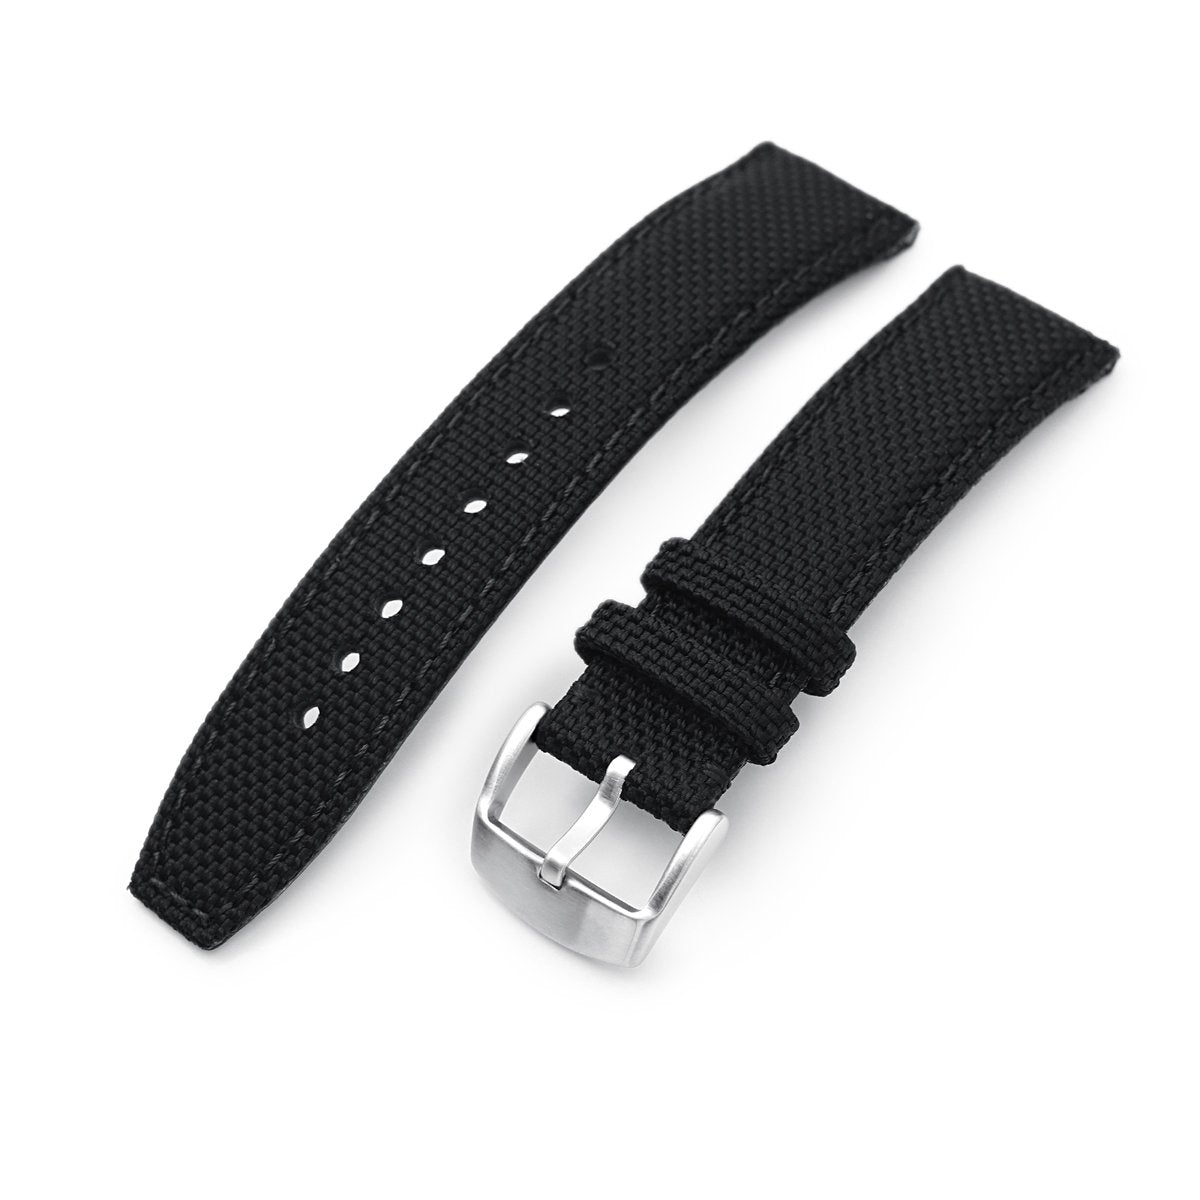 20mm 21mm or 22mm Strong Texture Woven Nylon Black Watch Strap Brushed Strapcode Watch Bands